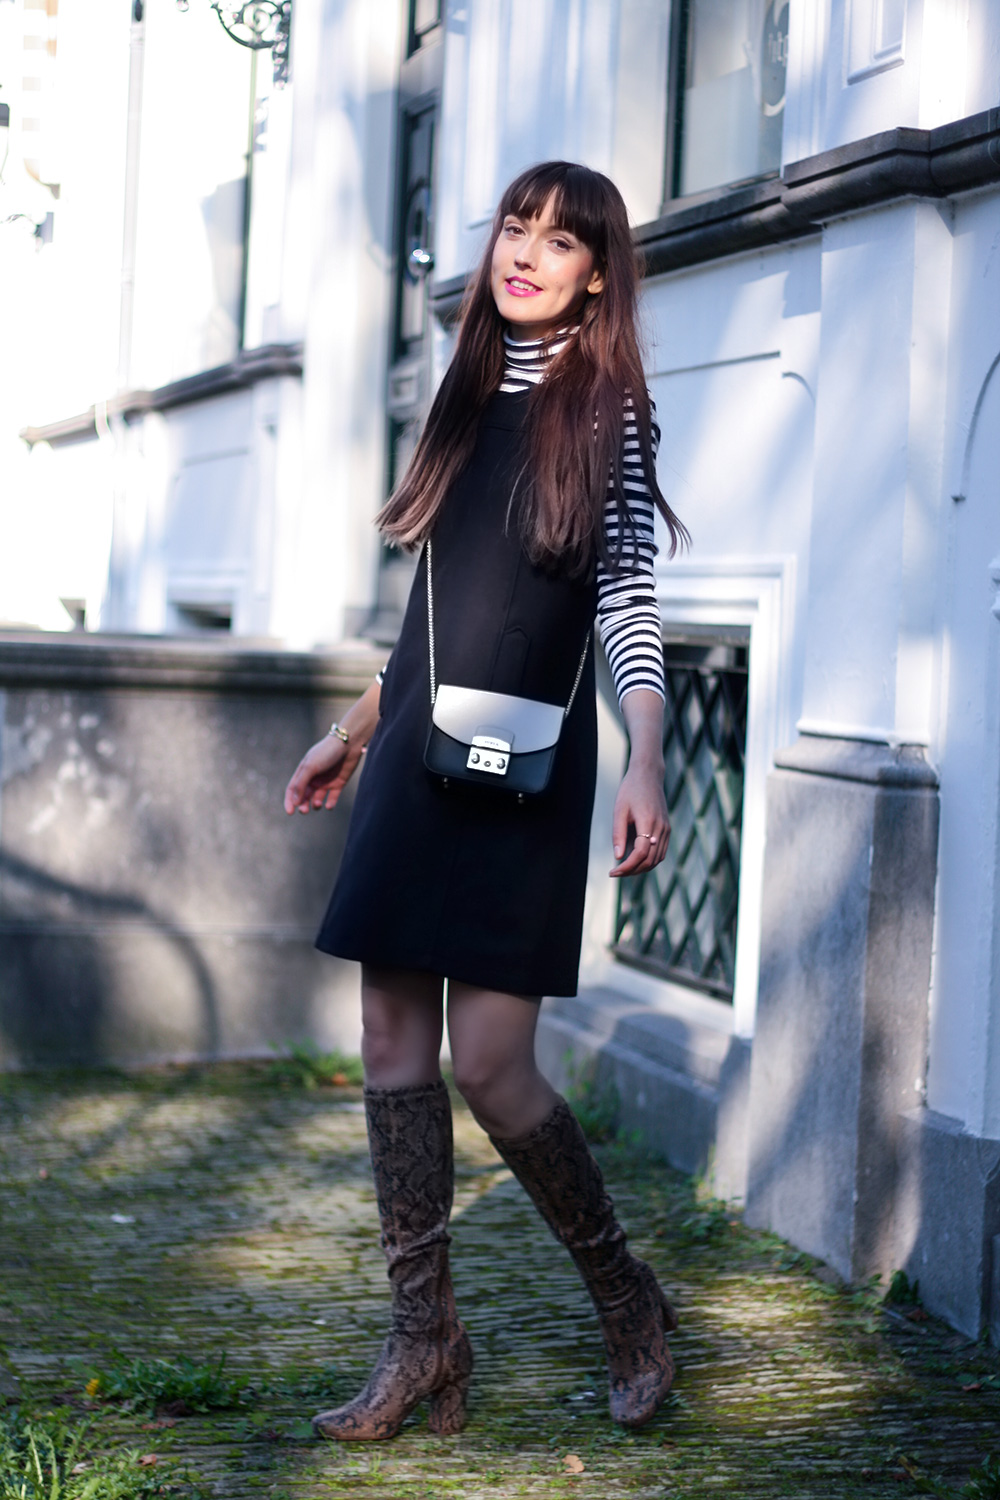 sixties-fashion-armor-lux-pinafore-dress-lipsy-striped-turleneck-fashion-blogger-outfit-5